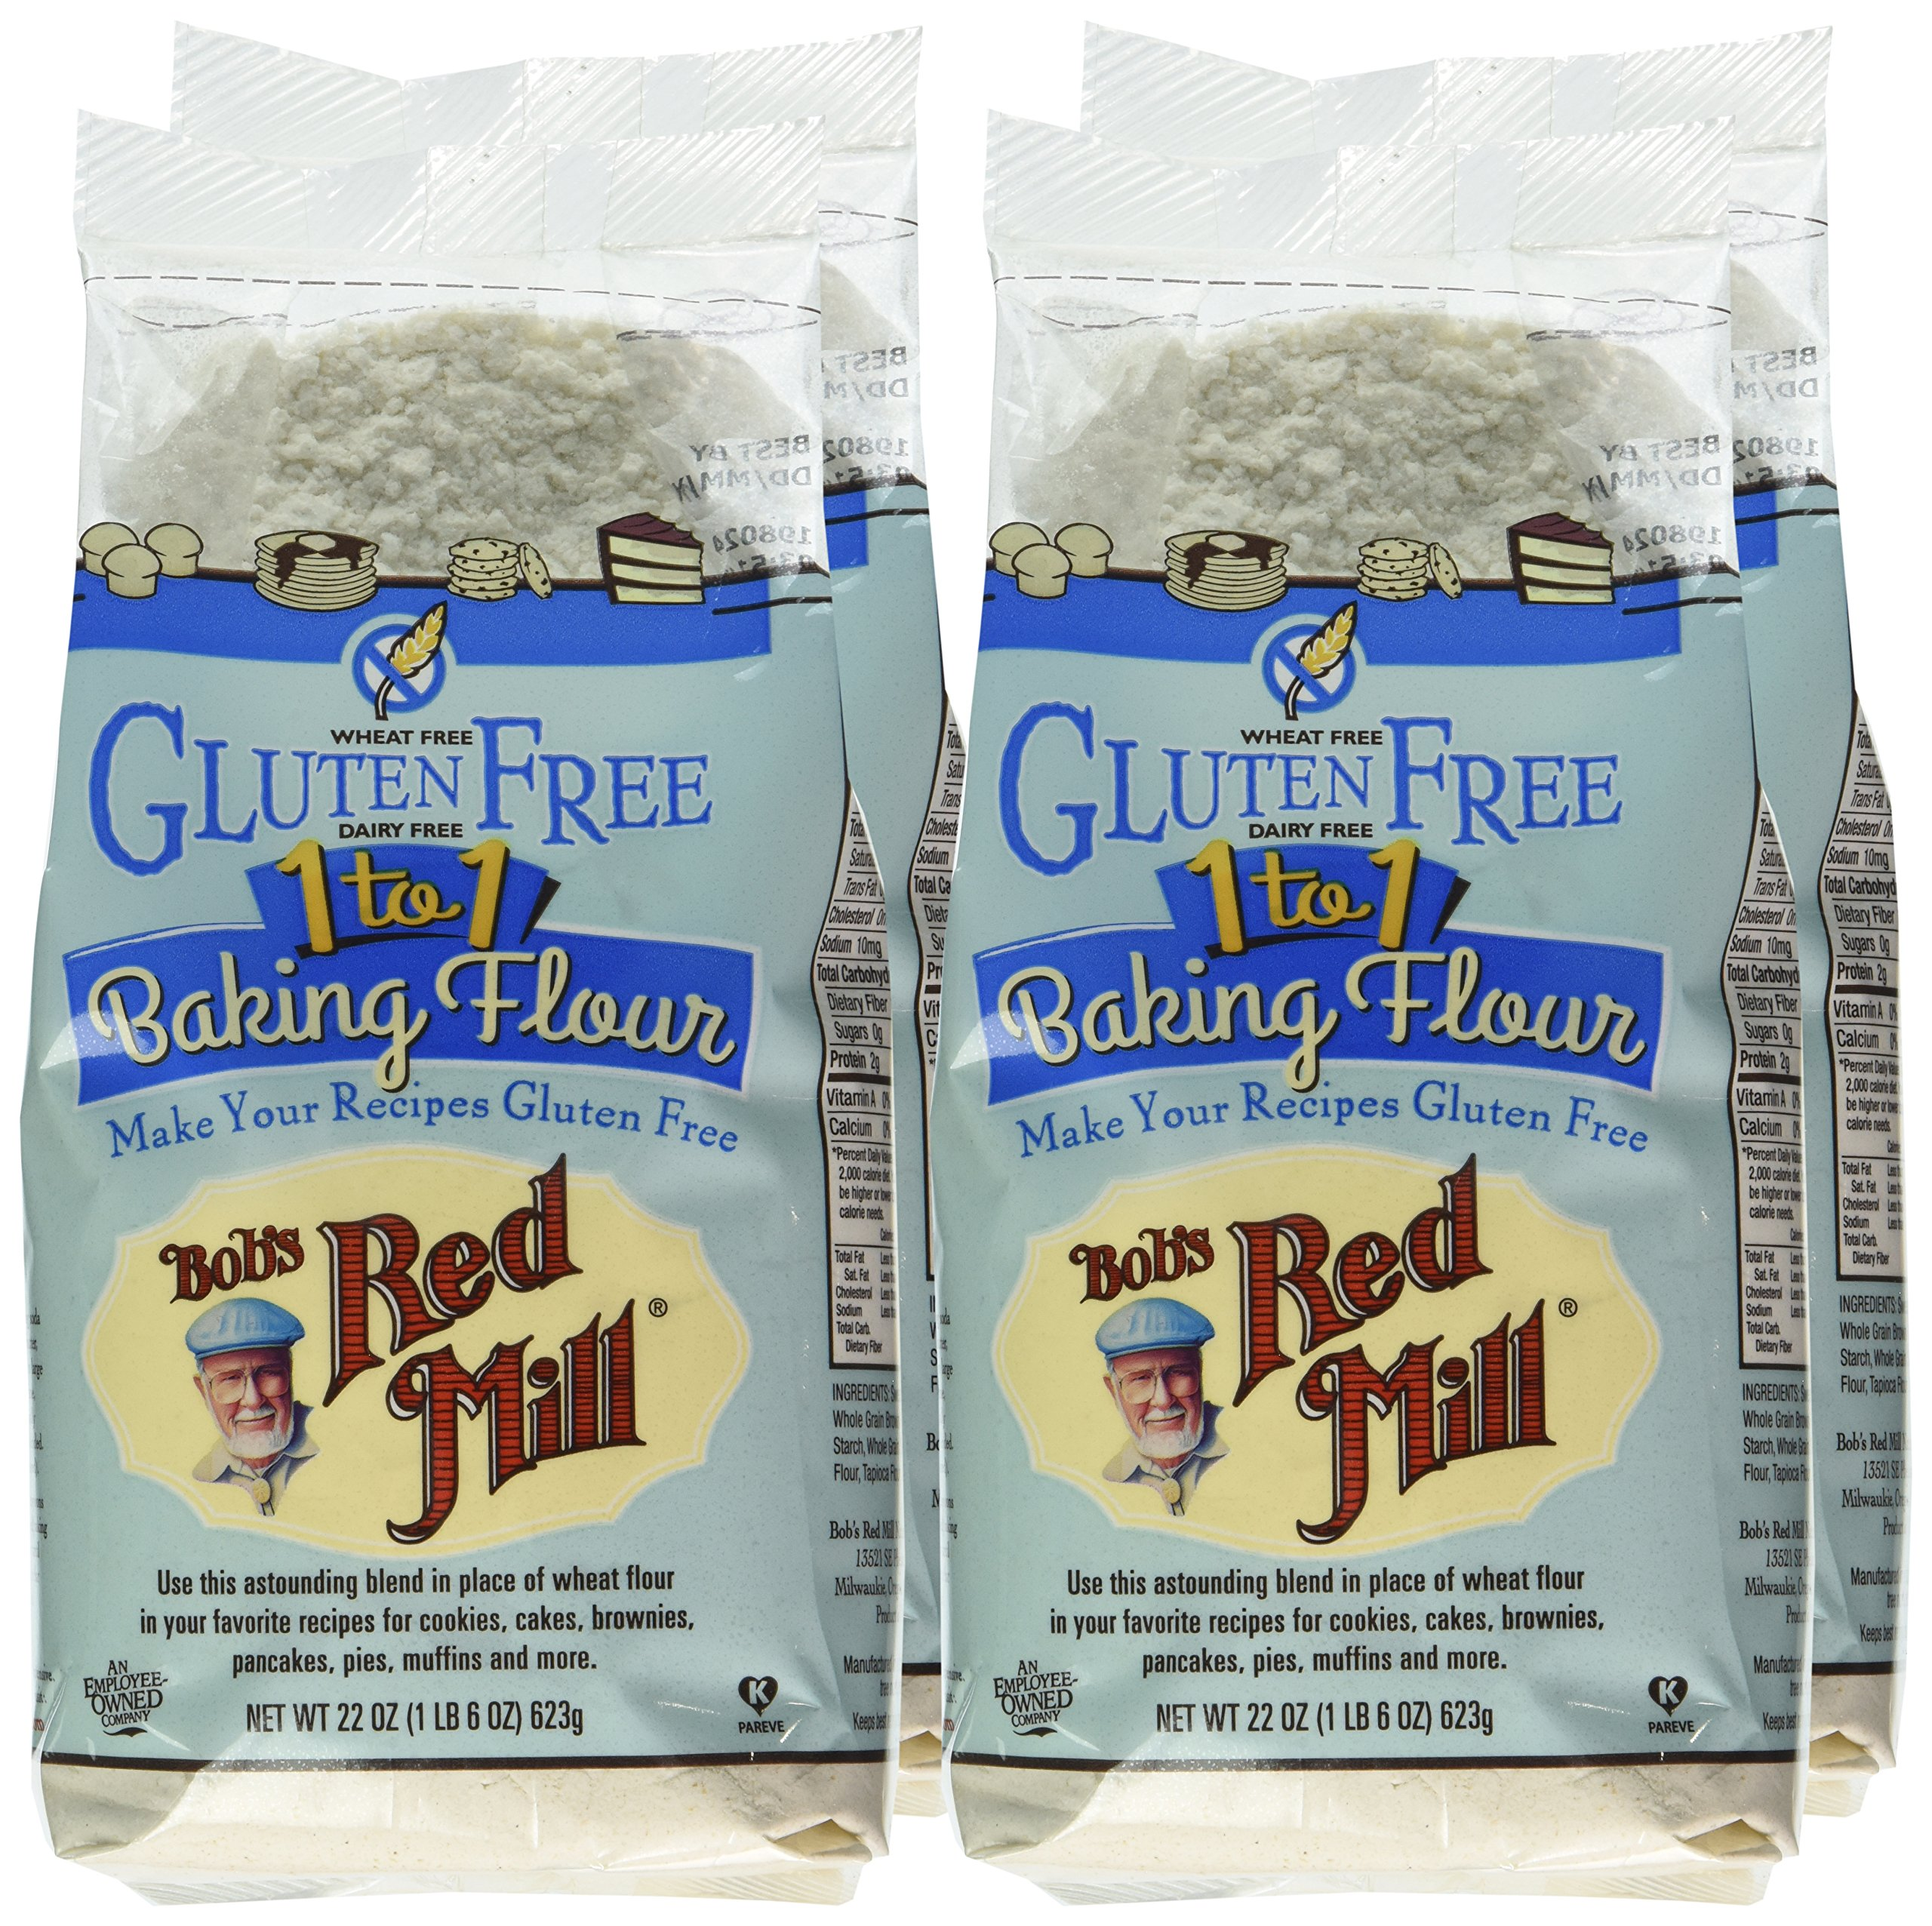 Bob's Red Mill Gluten Free 1-to-1 Baking Flour, 22 Ounce (Pack of 4) by Bob's Red Mill (Image #3)